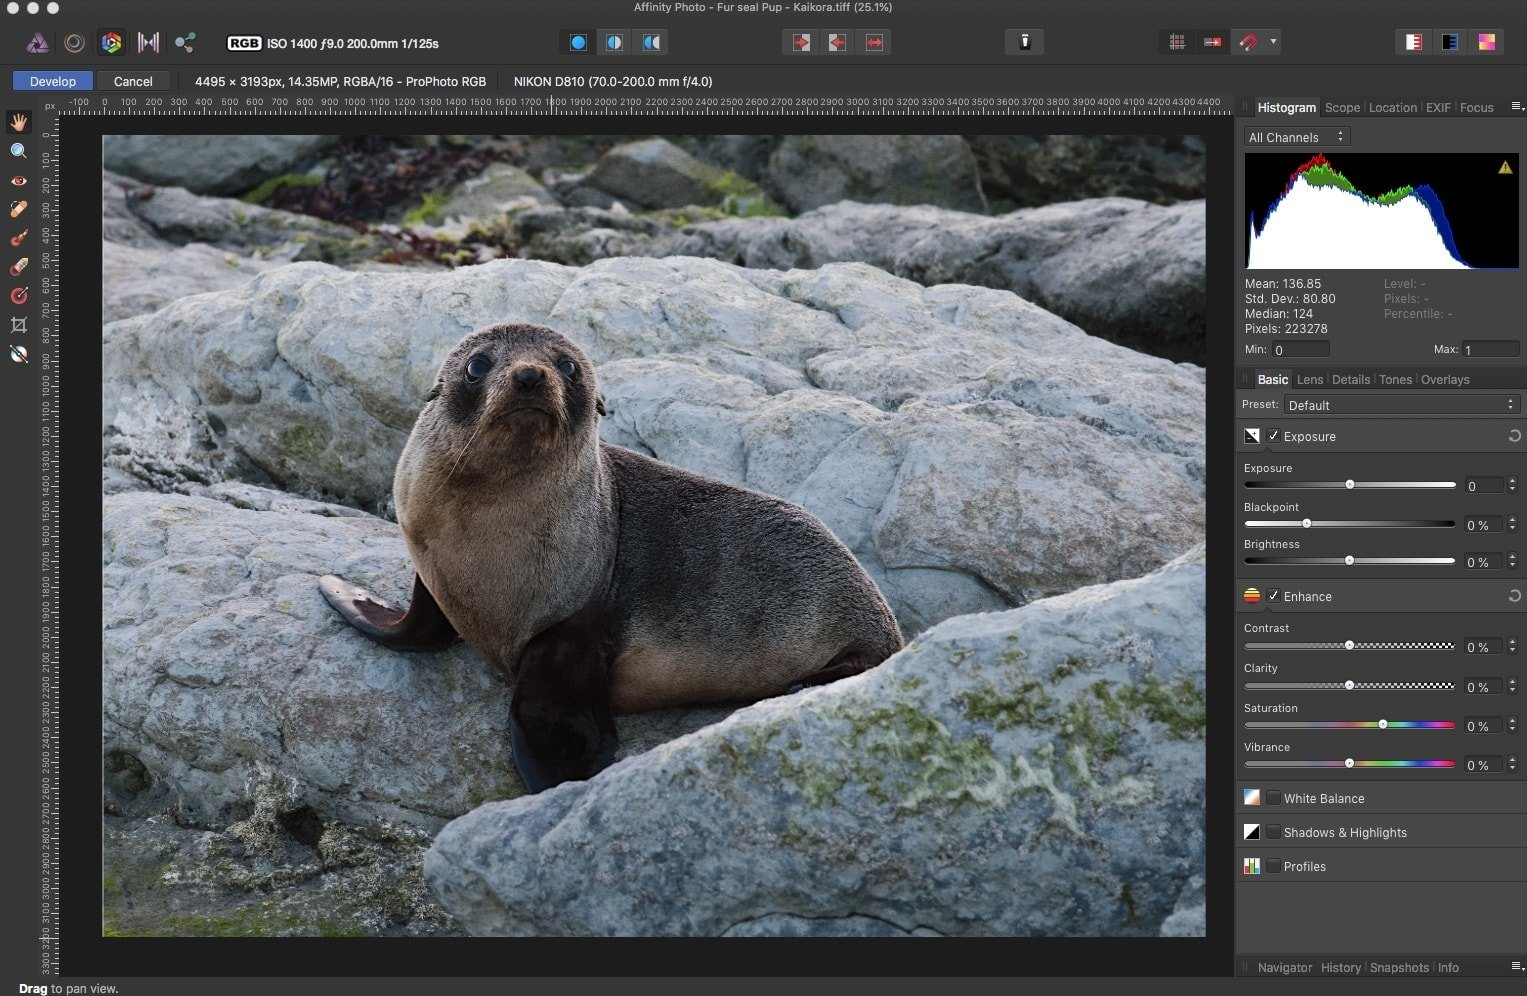 Affinity Photo vs Photoshop, which should you choose?